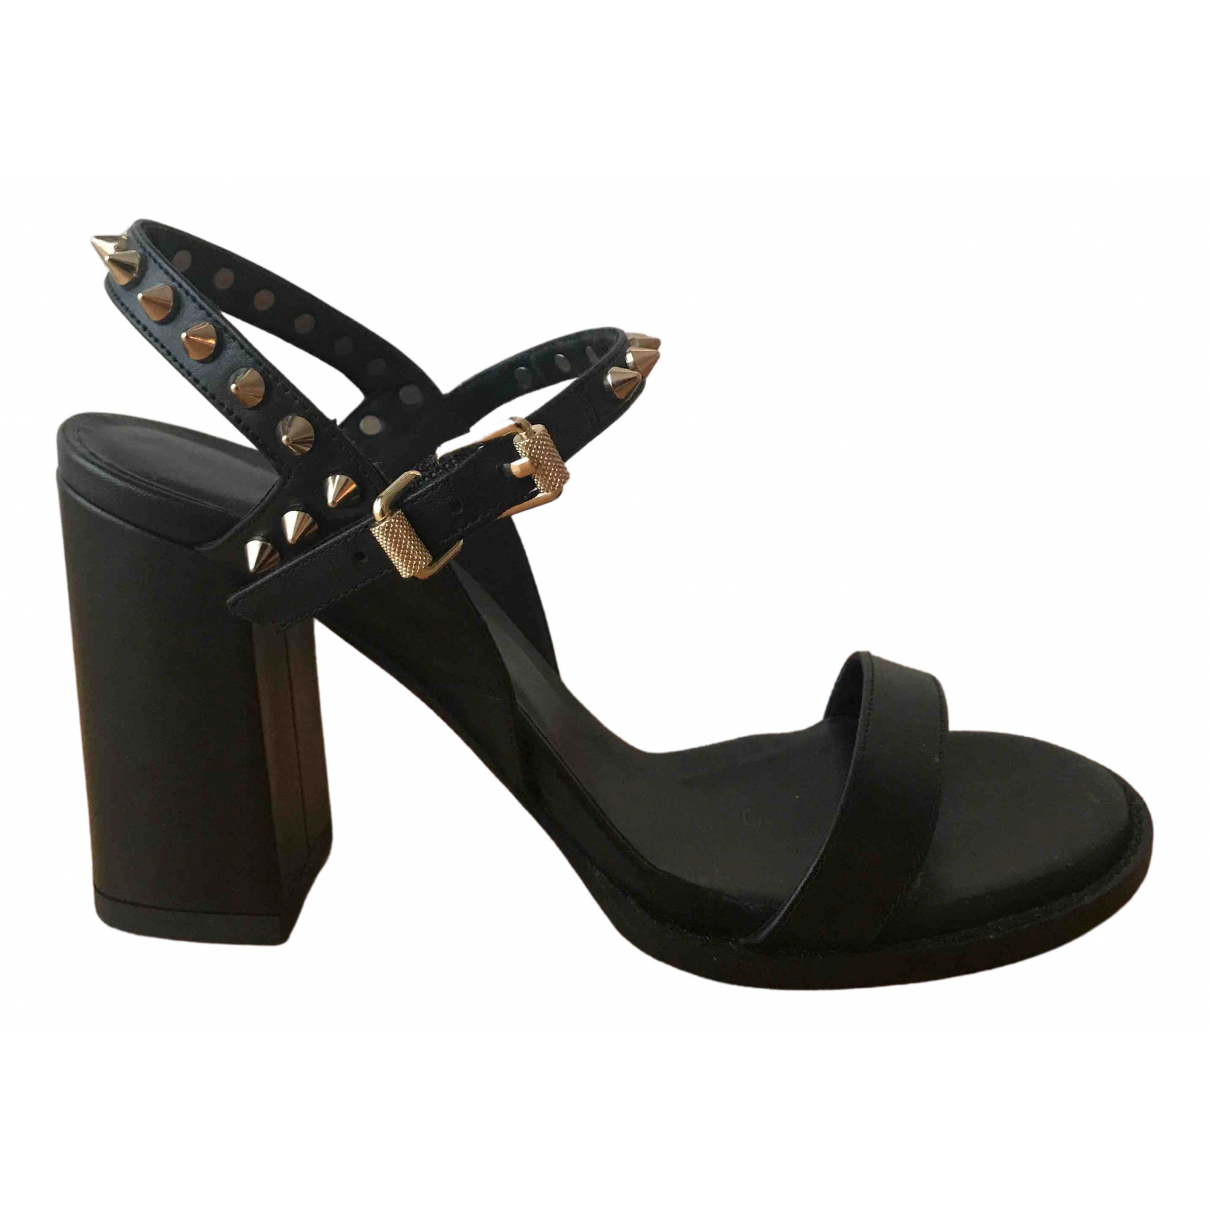 Zadig & Voltaire N Black Leather Sandals for Women 36 IT